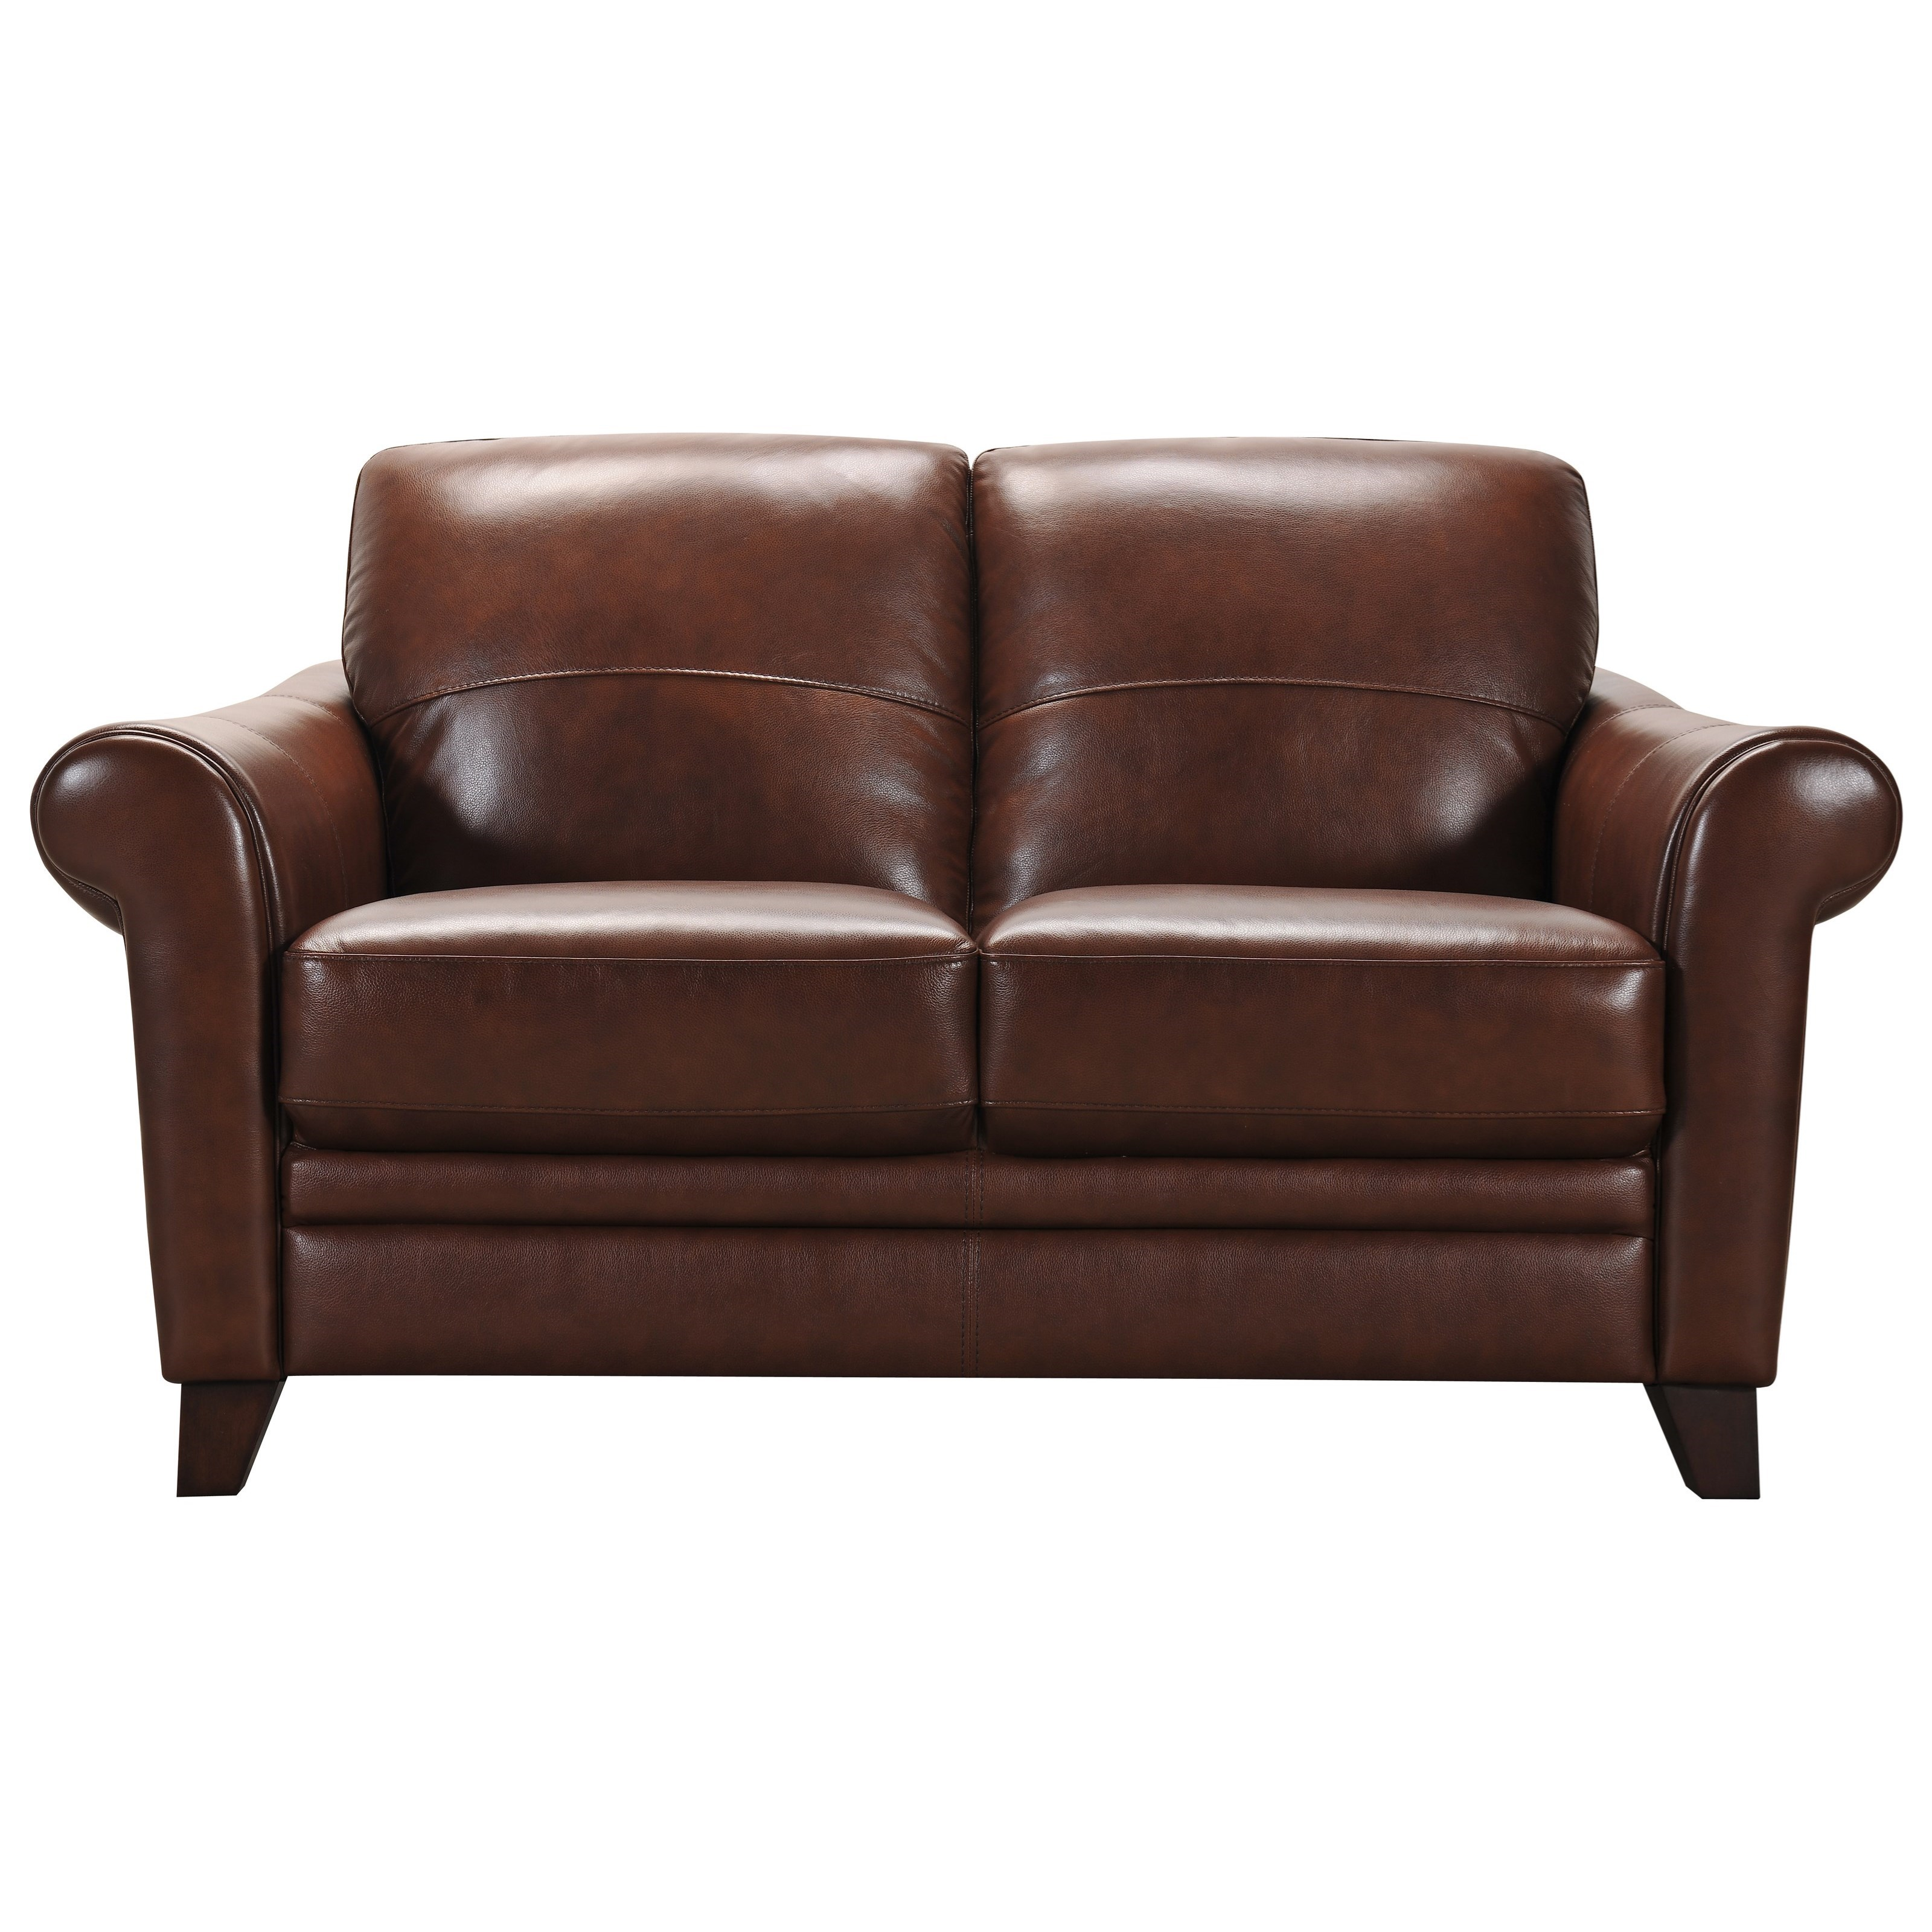 32238 Loveseat by Violino at Furniture Superstore - Rochester, MN